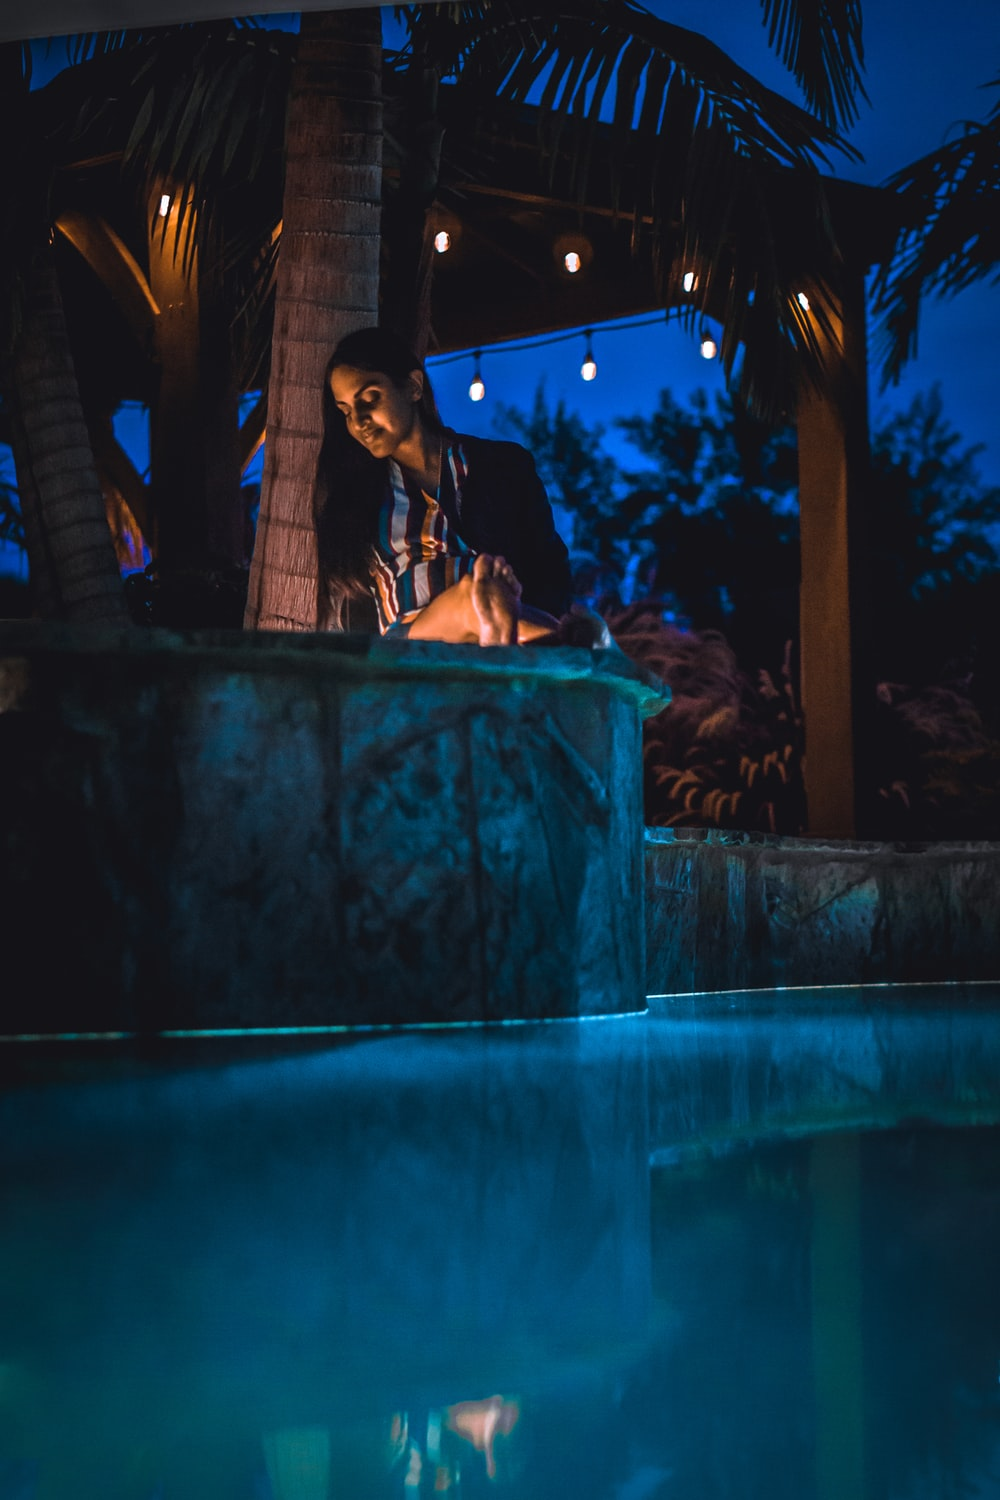 woman sitting in pool beside lighted pendant bulbs during night time